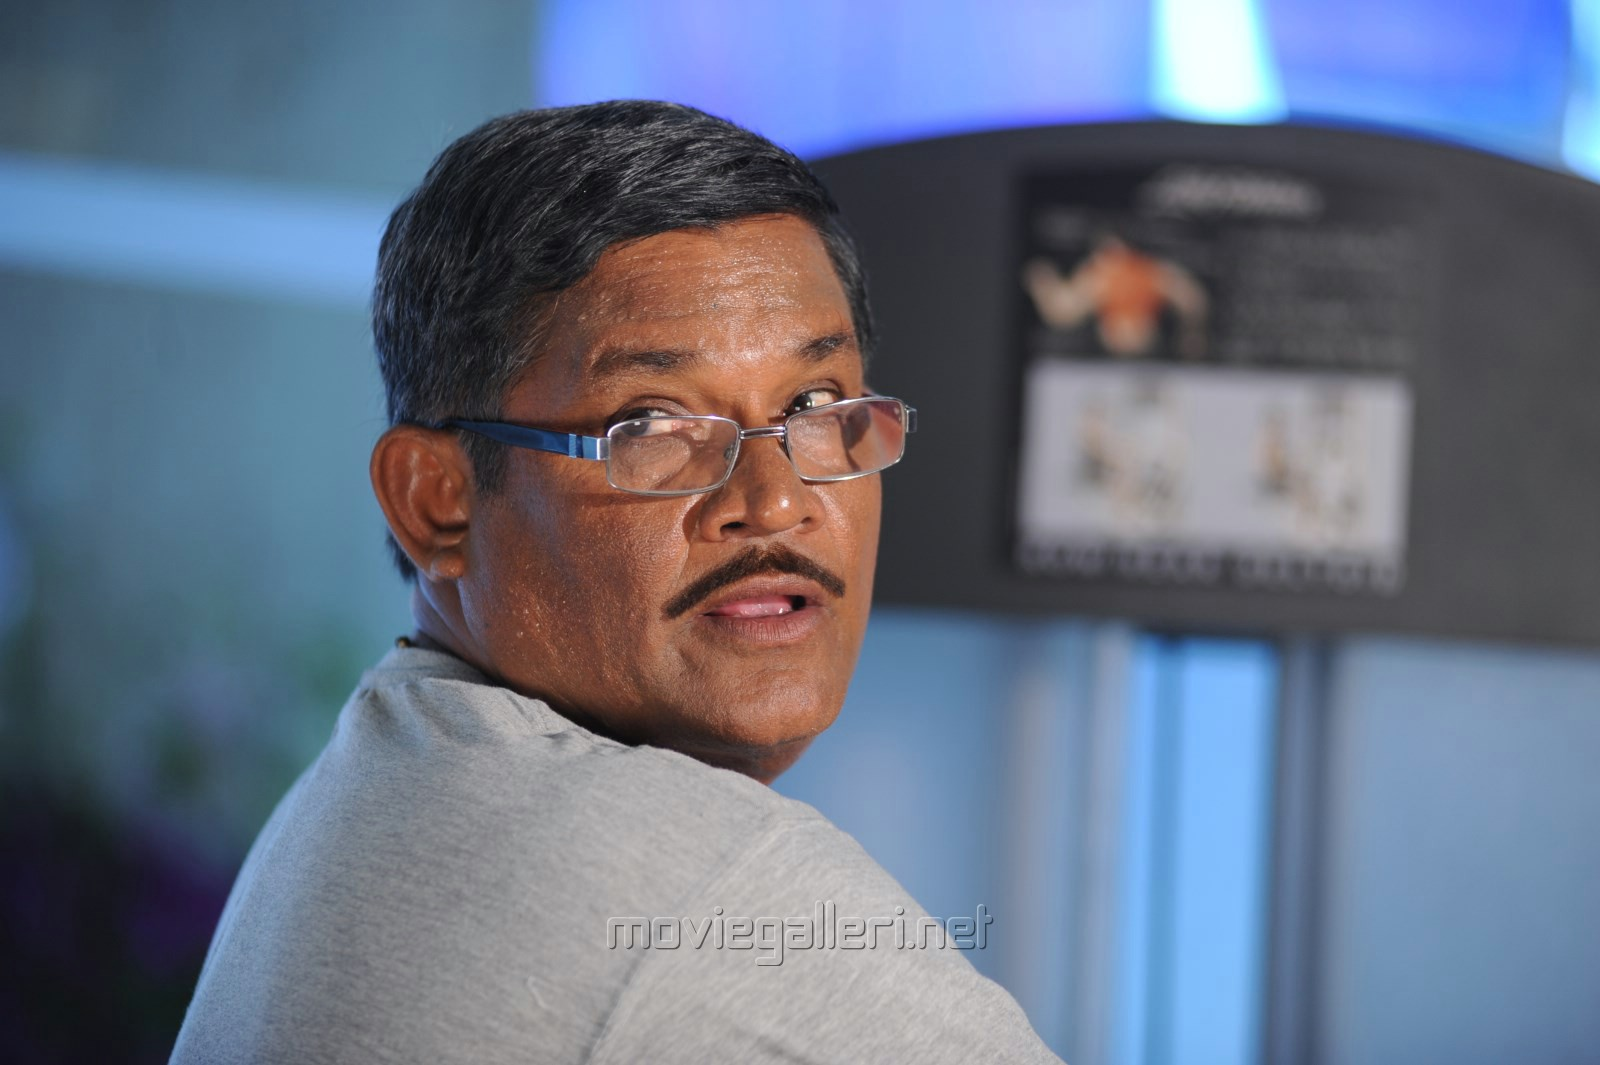 tanikella bharani sontanikella bharani son, tanikella bharani movies, tanikella bharani directed movies, tanikella bharani caste, tanikella bharani siva songs, tanikella bharani interview, tanikella bharani daughter, tanikella bharani short films, tanikella bharani books, tanikella bharani writings, tanikella bharani remuneration, tanikella bharani siva songs lyrics, tanikella bharani movies list, tanikella bharani shabash ra shankara lyrics, tanikella bharani family photos, tanikella bharani sada siva, tanikella bharani daughter wedding, tanikella bharani net worth, tanikella bharani son movie, tanikella bharani video songs